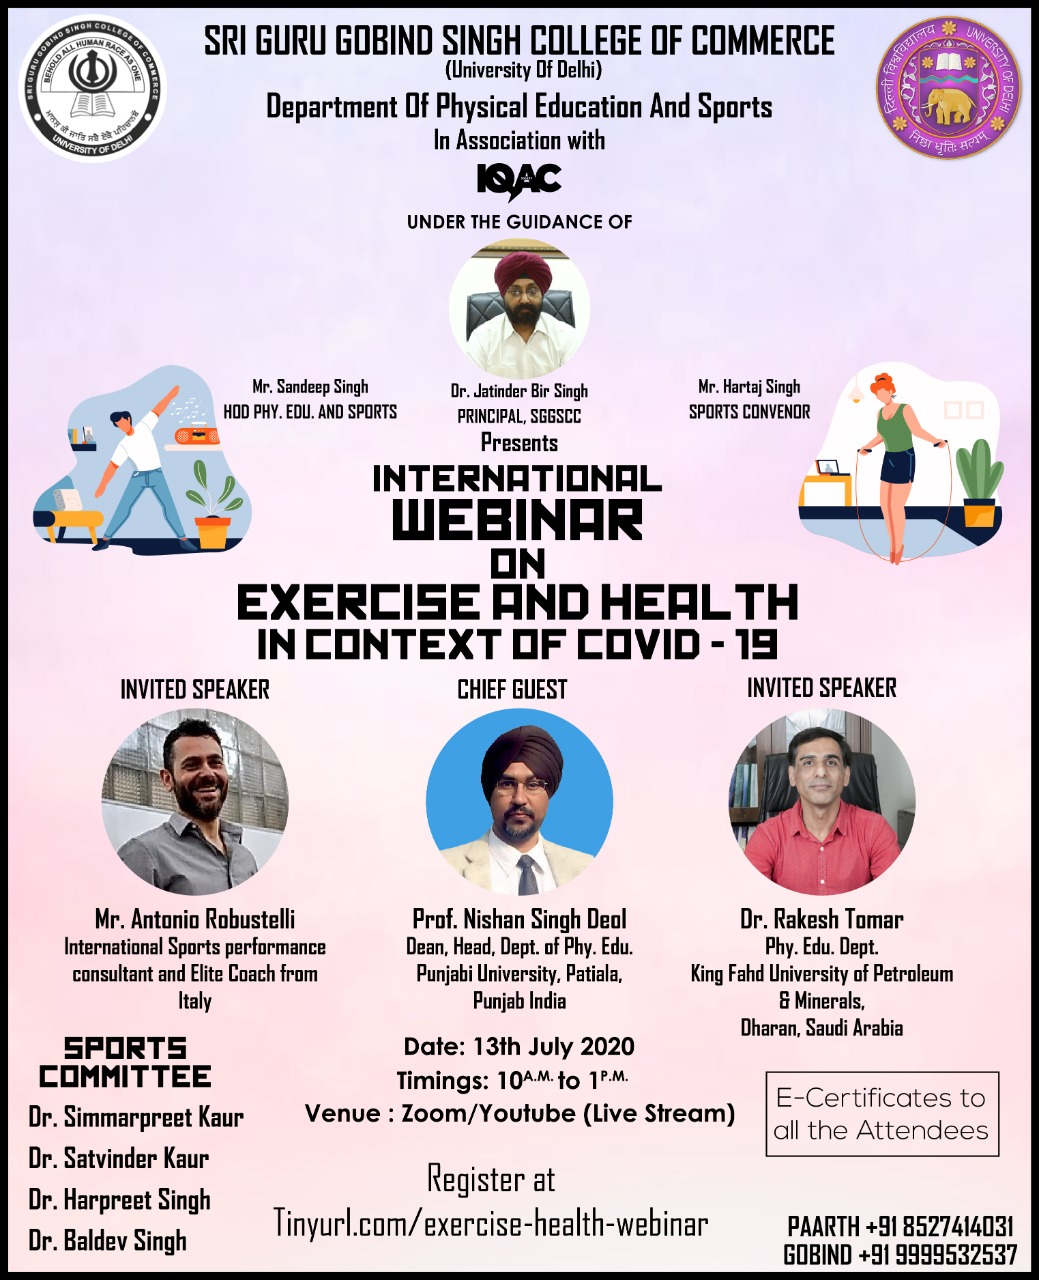 International Webinar on Exercise and Health in context of COVID-19